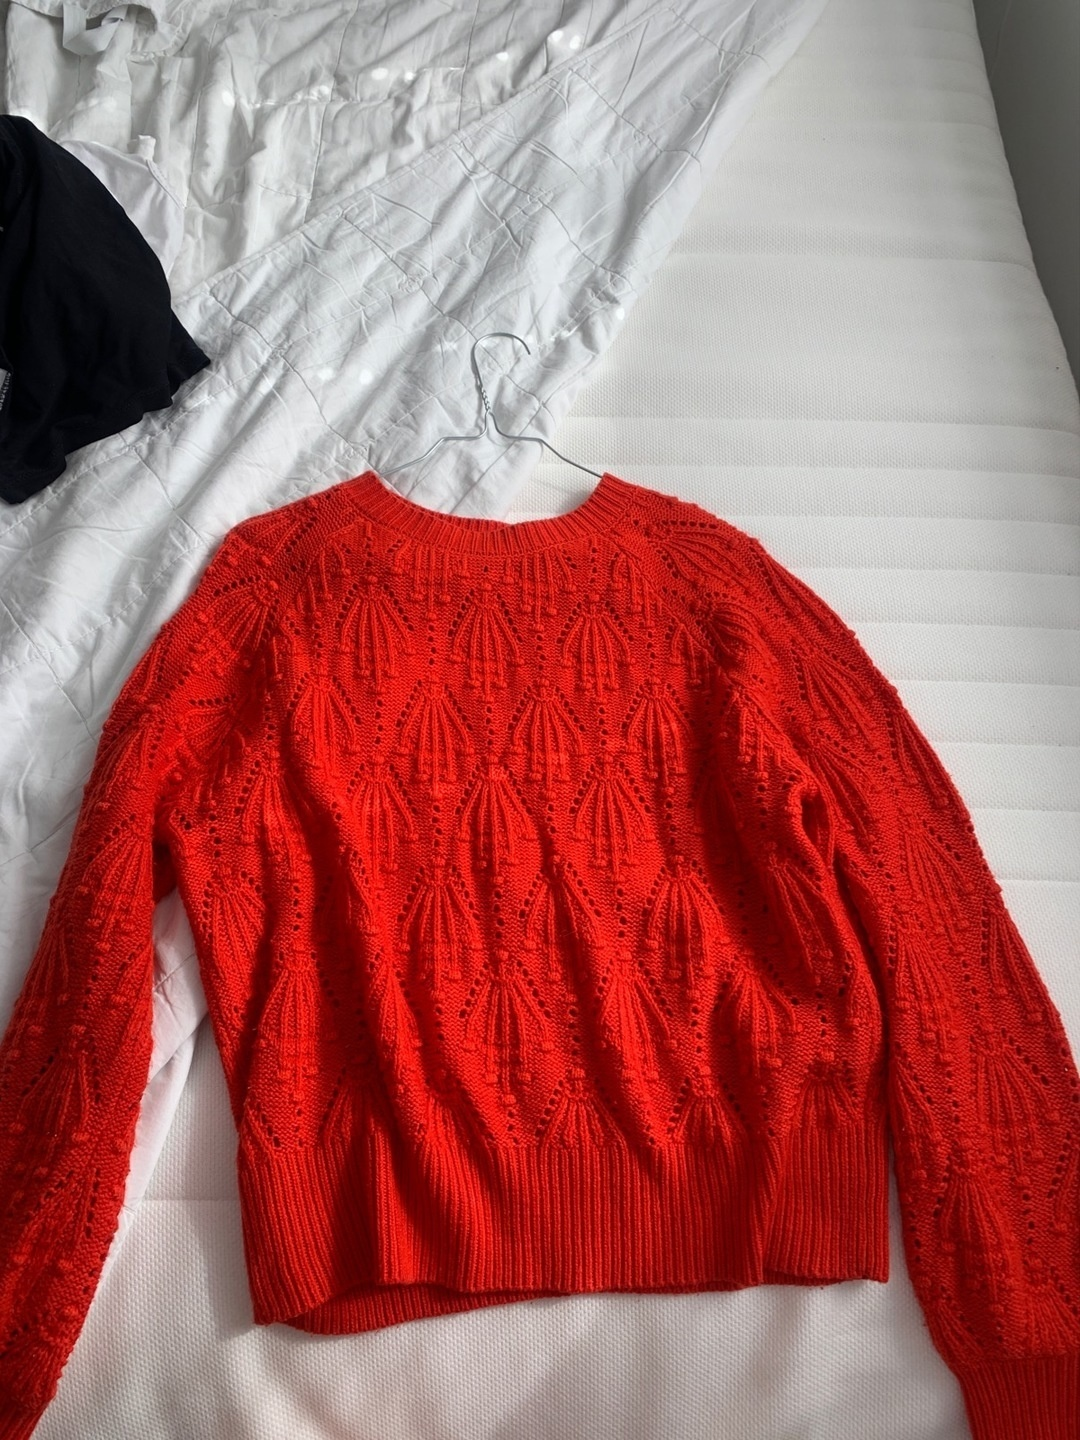 Women's jumpers & cardigans - VERO MODA photo 1